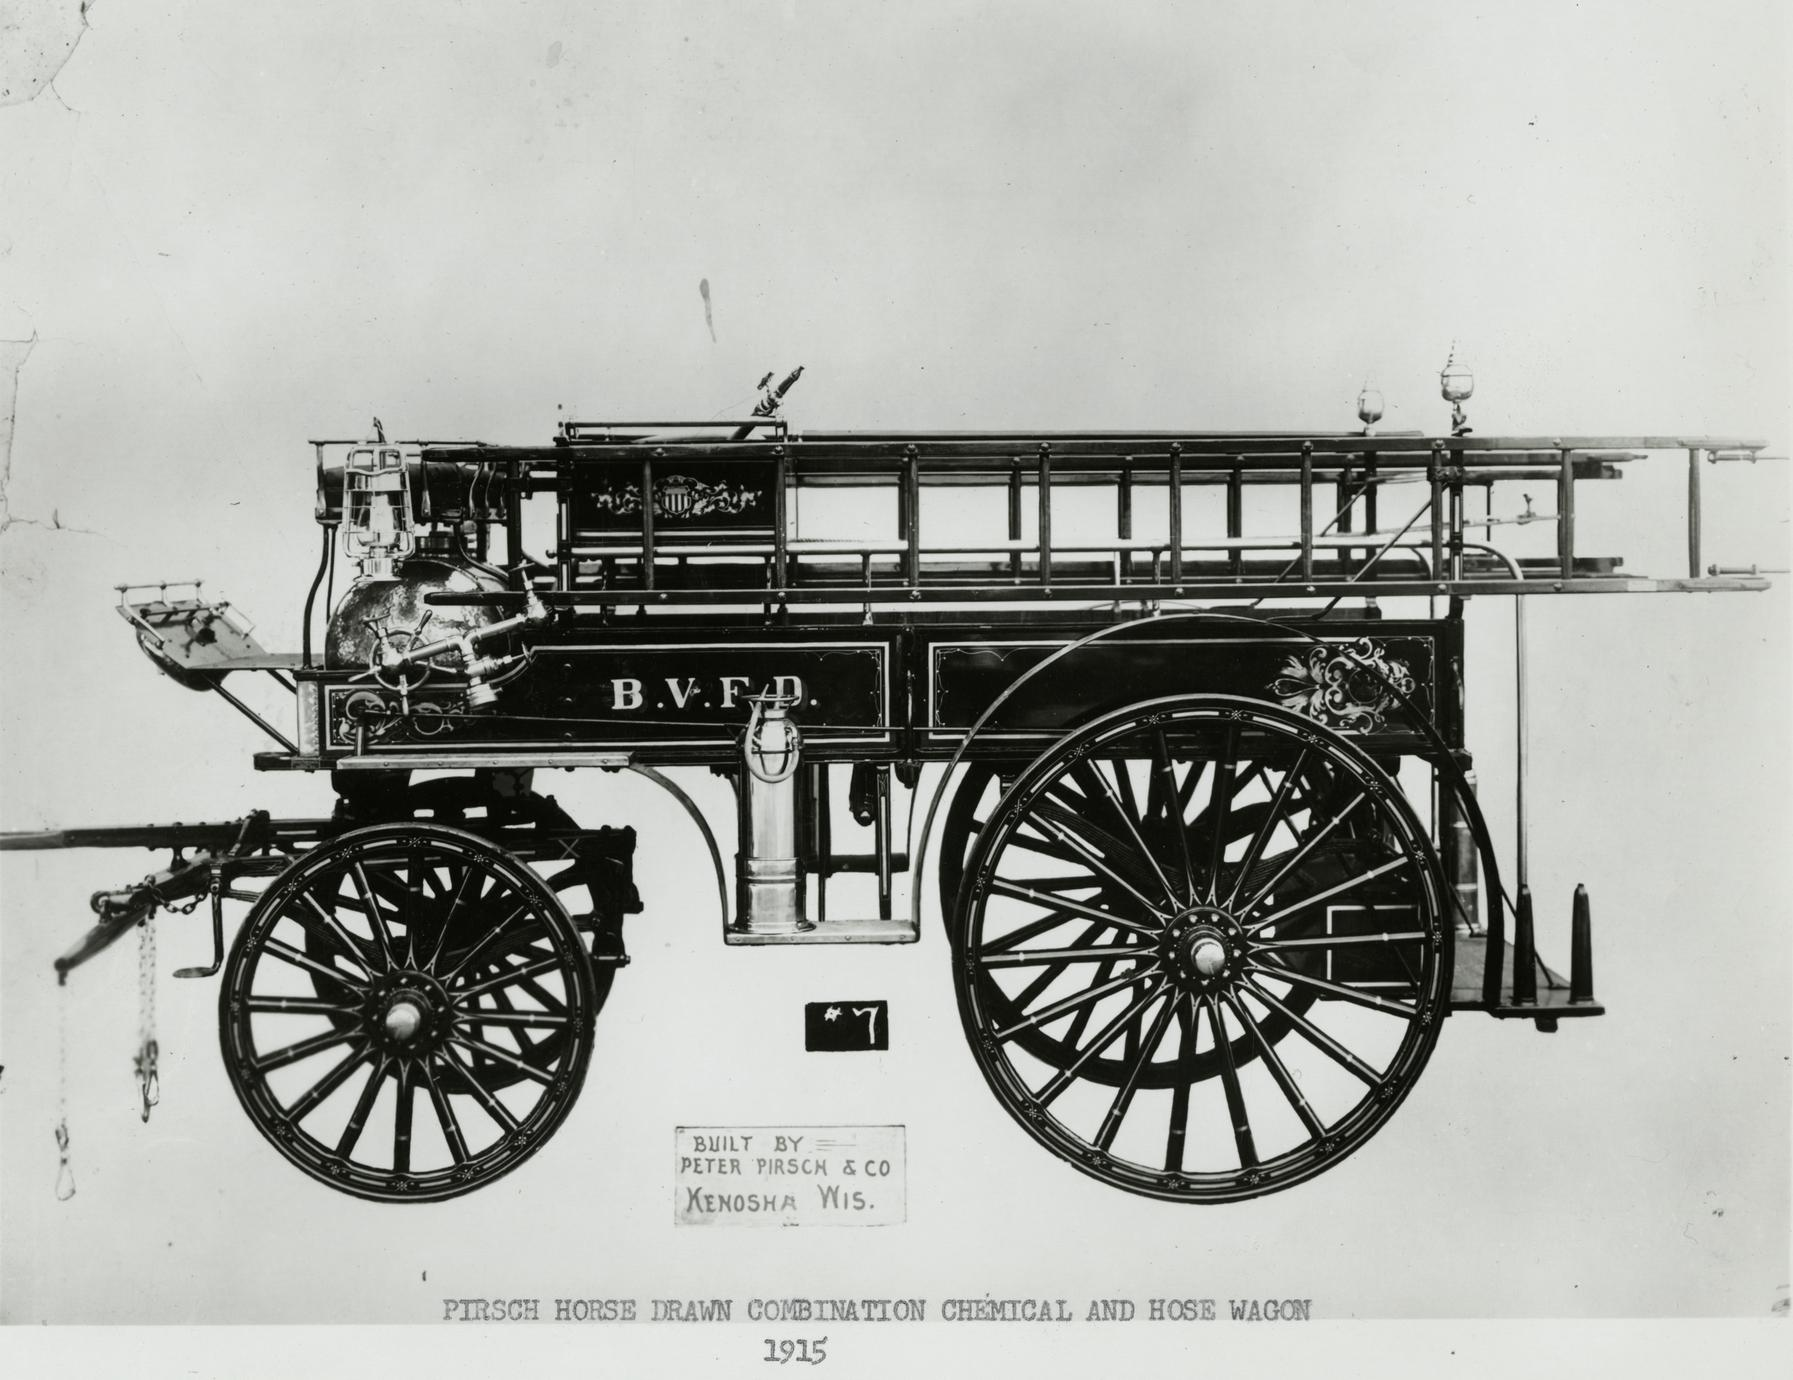 Pirsch horse-drawn fire wagon